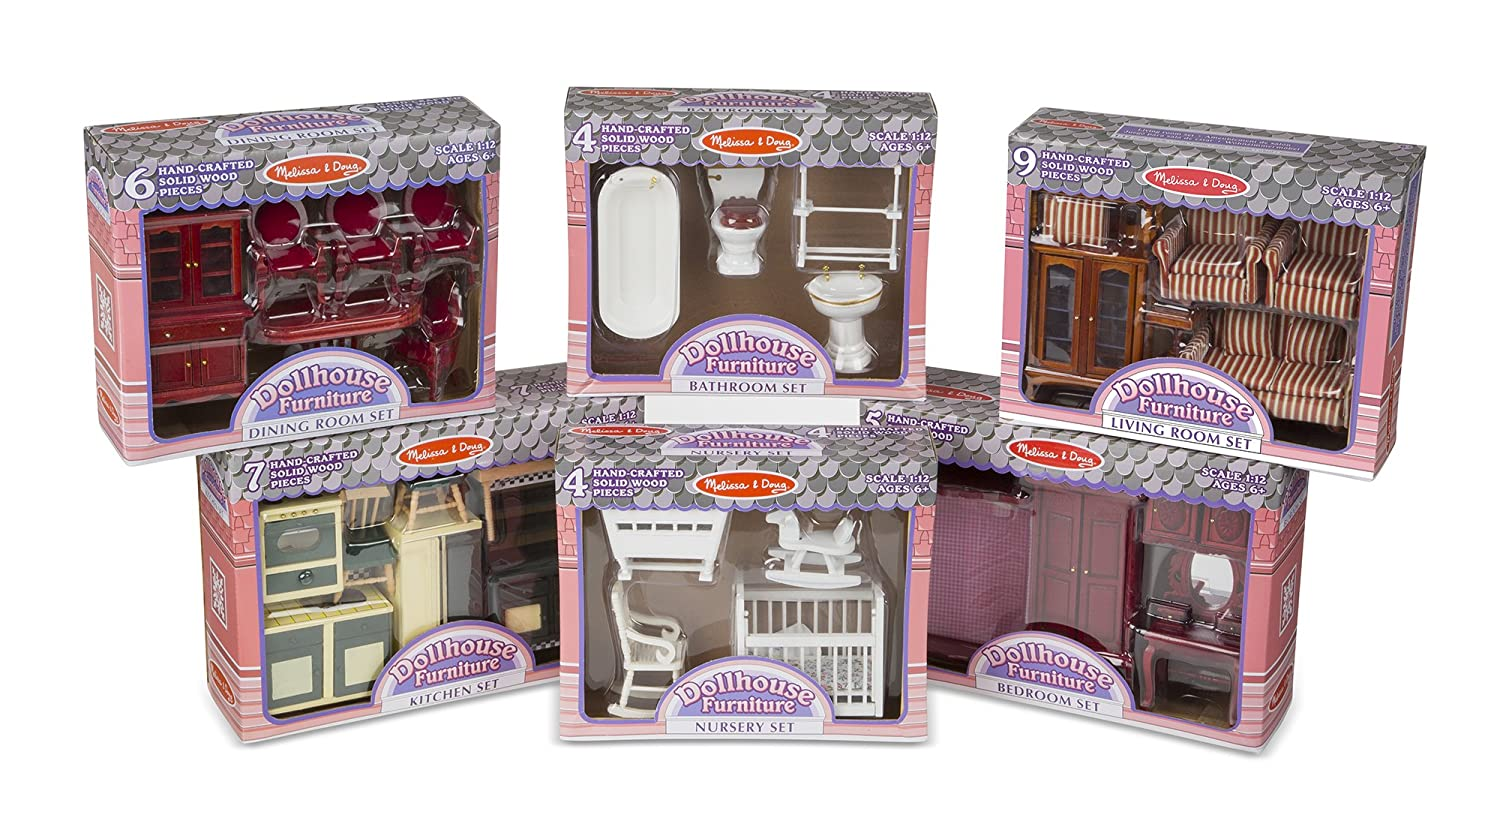 "Melissa & Doug Classic Victorian Wooden and Upholstered Dollhouse Furniture, 1:12 Scale, Lovely Victorian Style, 35 Pieces, 20"" H x 14"" W x 12"" L"